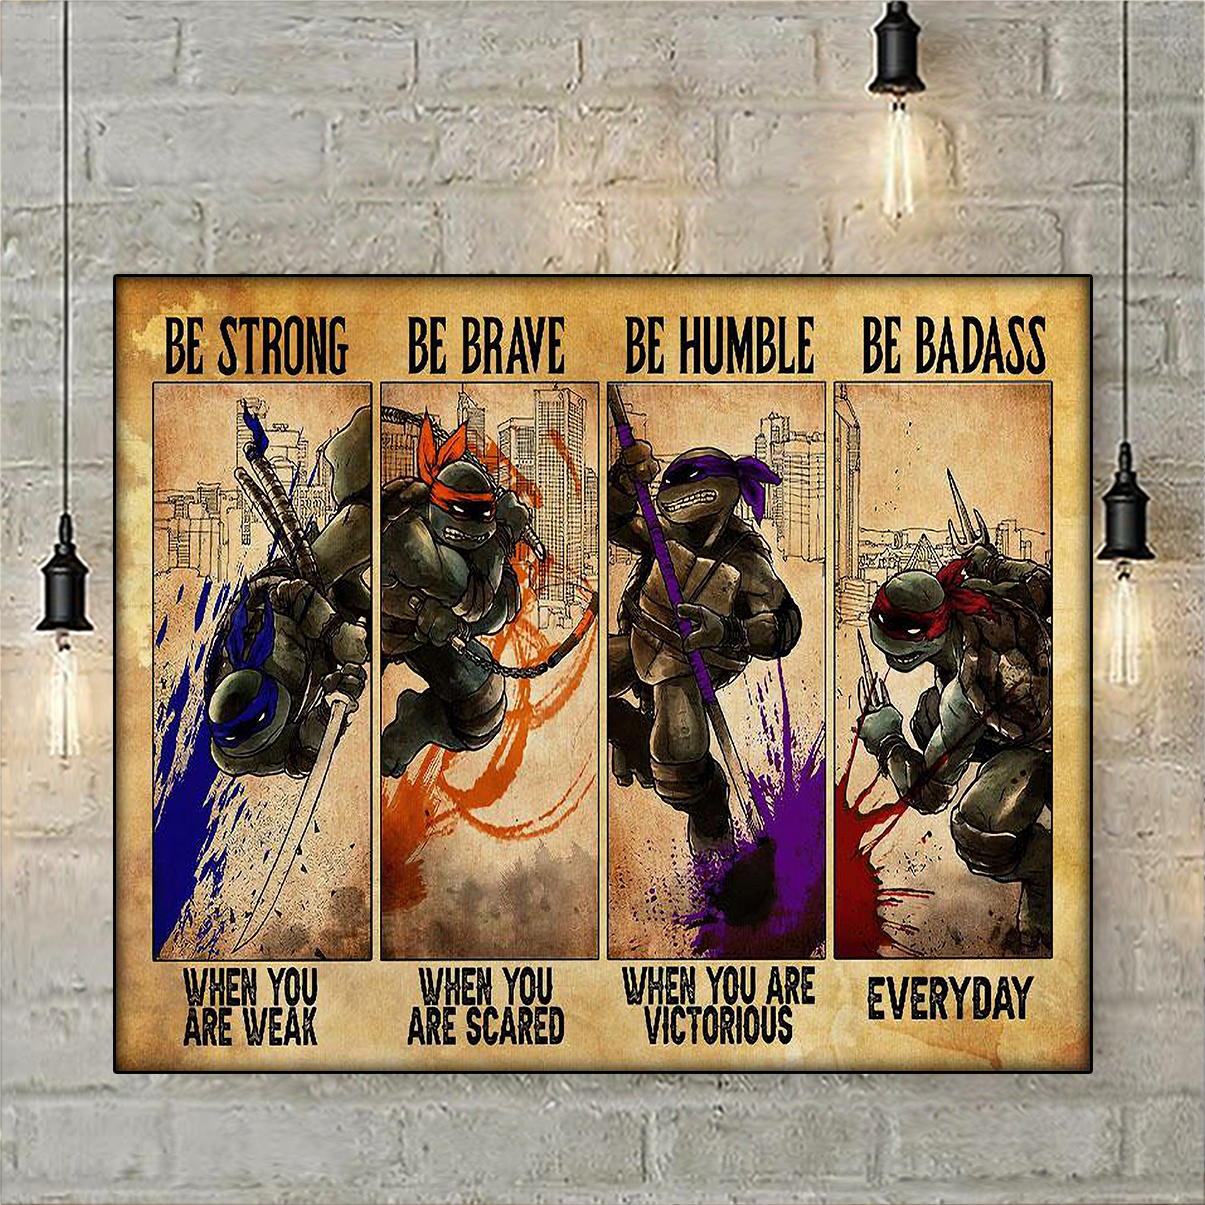 Teenage Mutant Ninja Turtles black be strong be brave be humble be badass poster A3